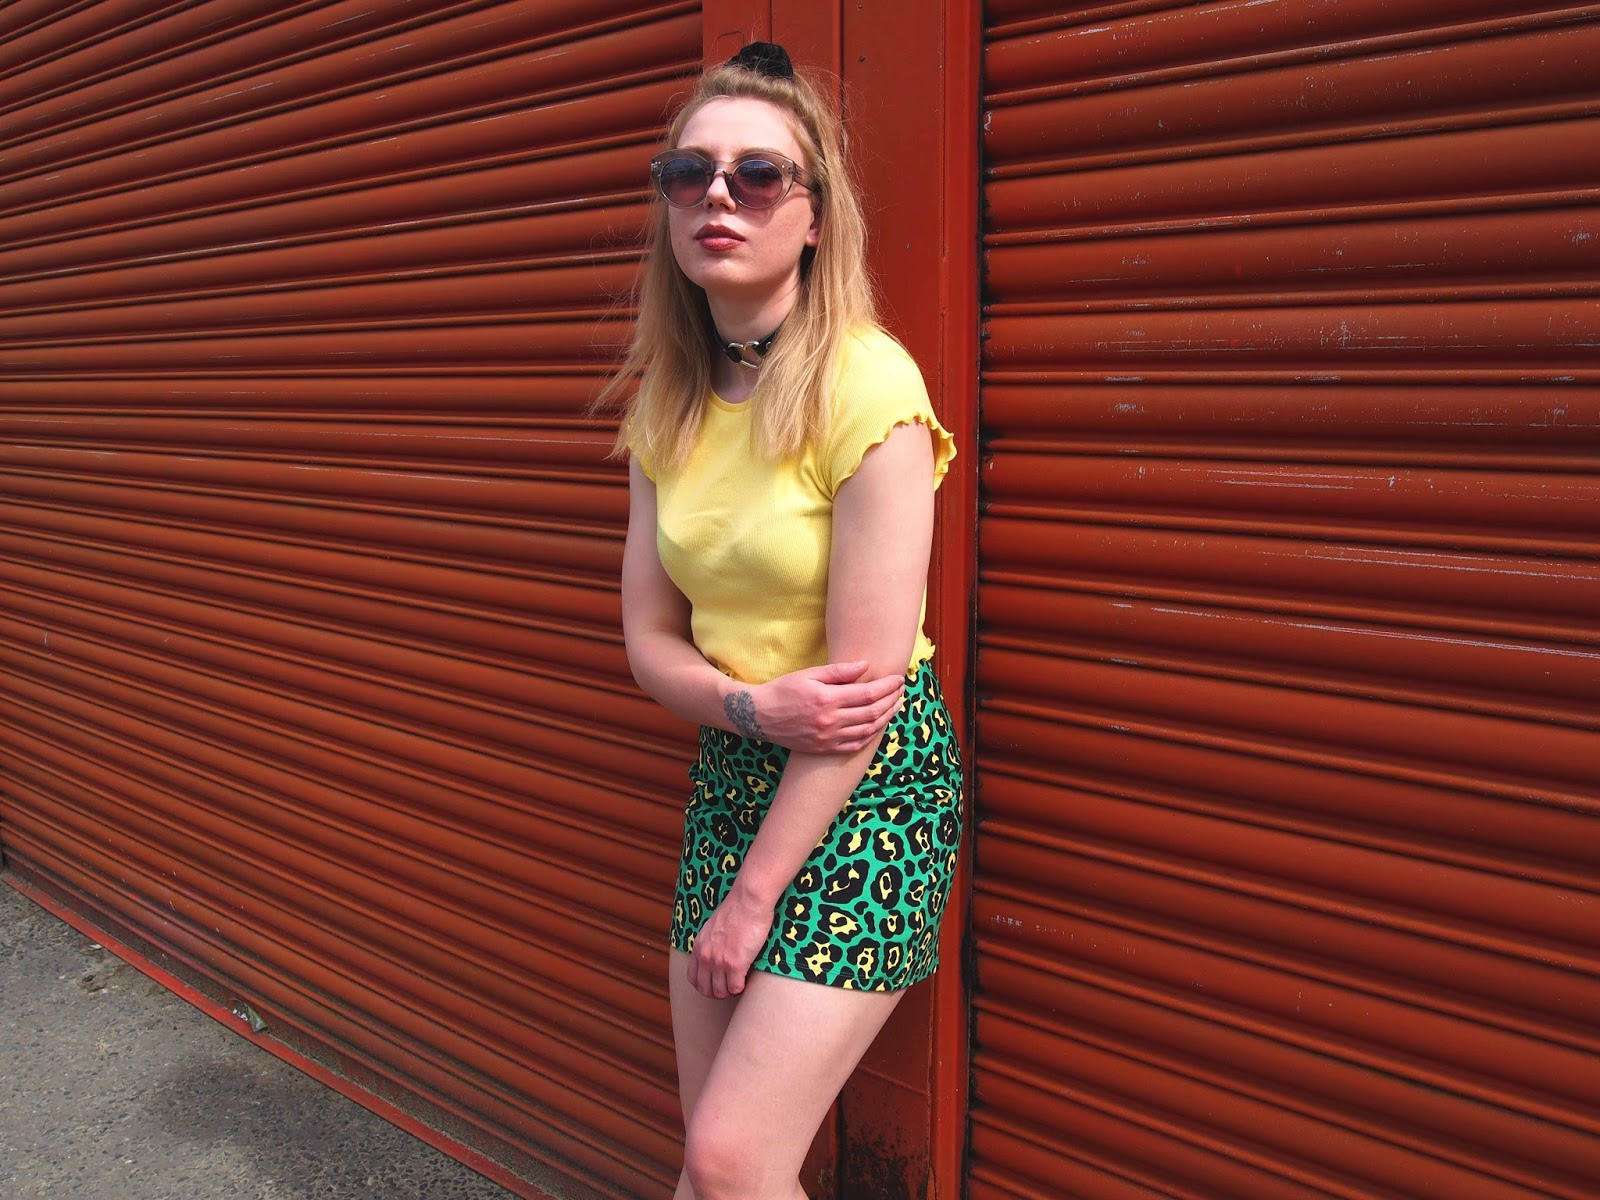 grunge 90's fashion style outfit ootd, summer casual alternative unique outfit, colourful leopard print bodycon skirt, lettuce frill trim 90's crop top, heart o ring choker, half up hair 1